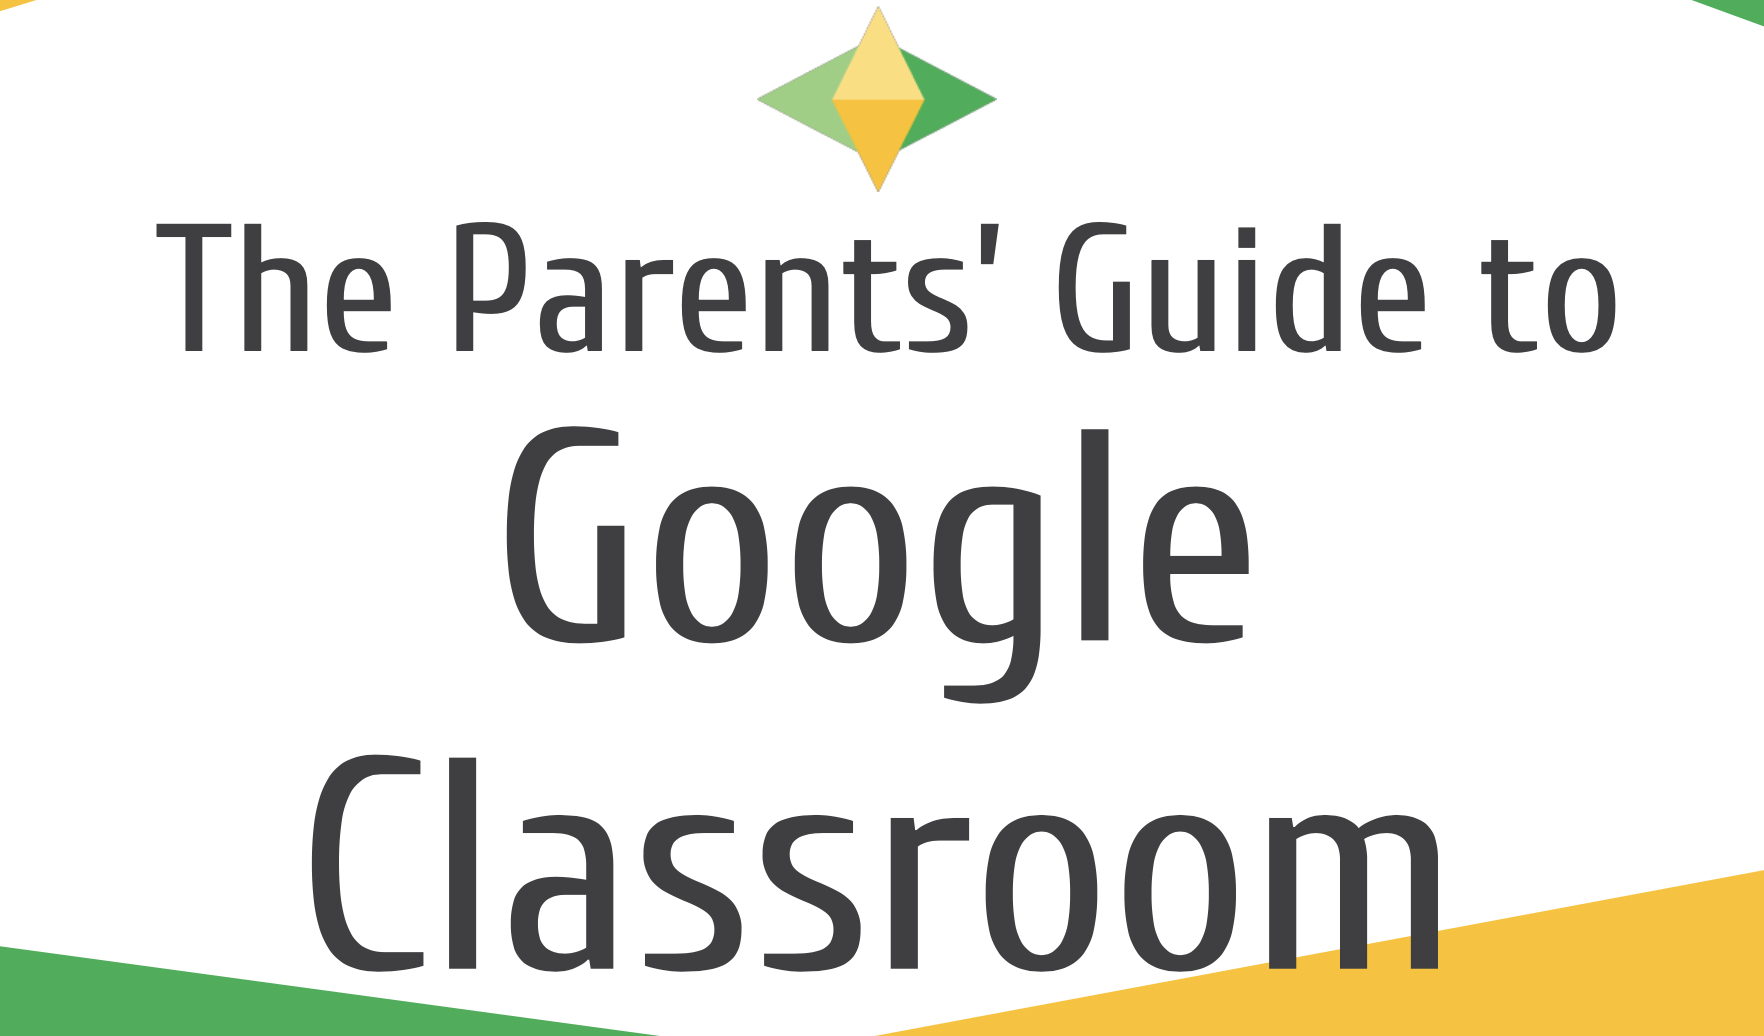 Parents' Guide to Google Classrooom